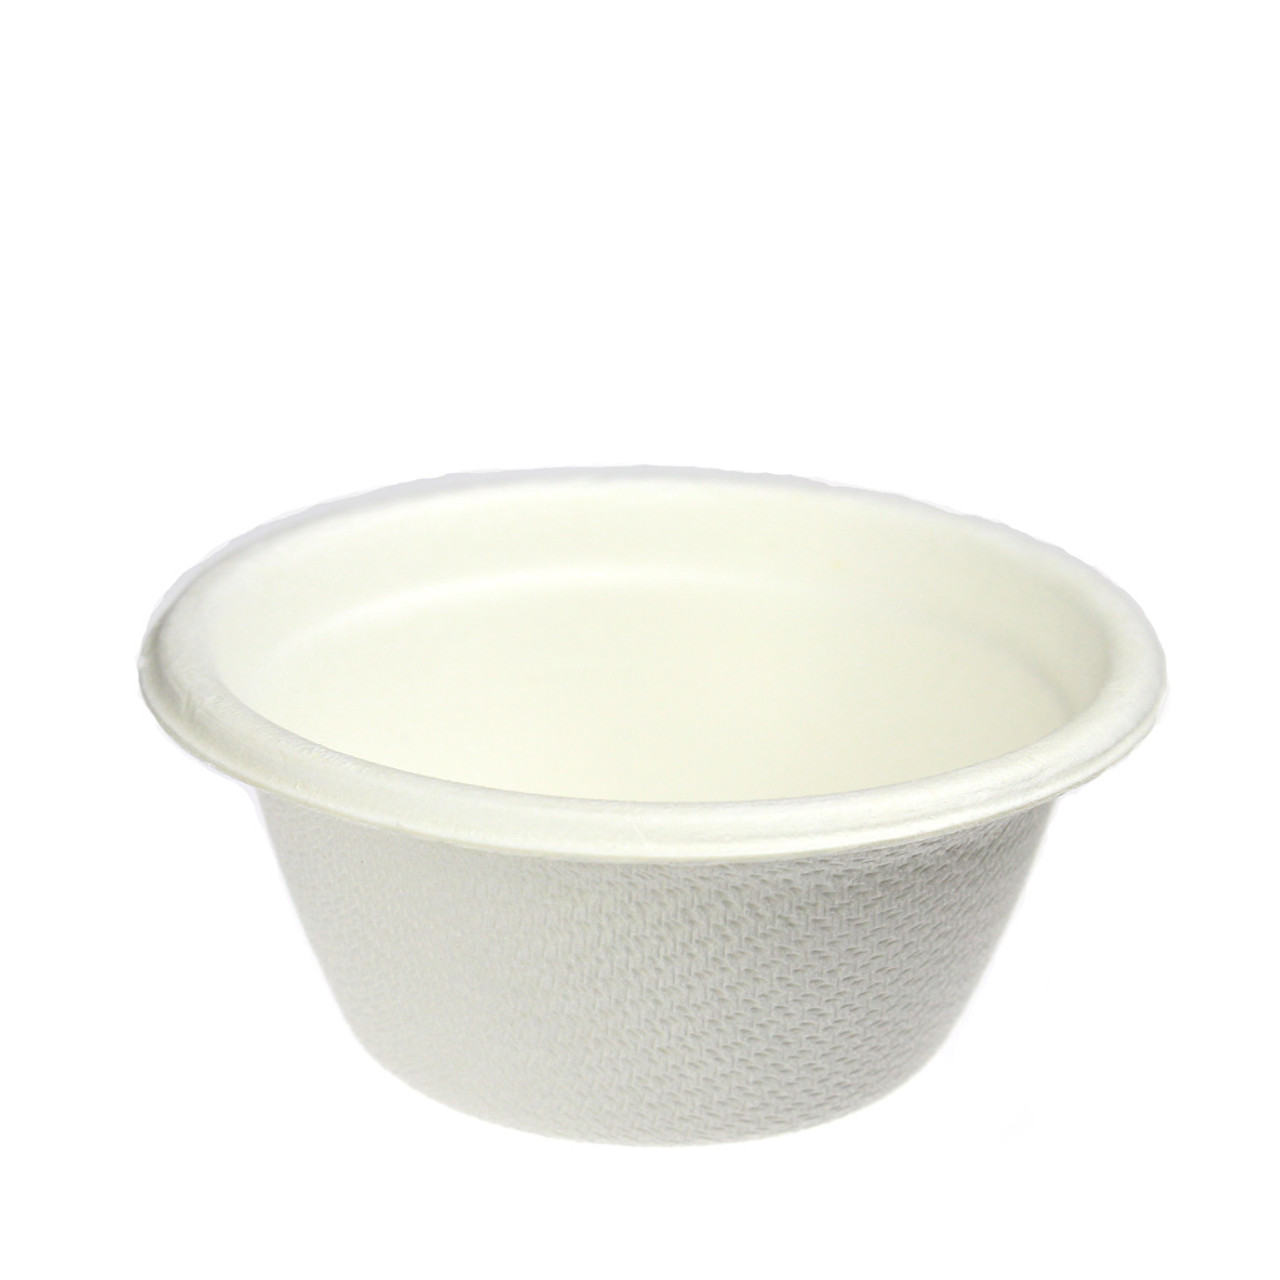 2oz sugarcane sampling cup